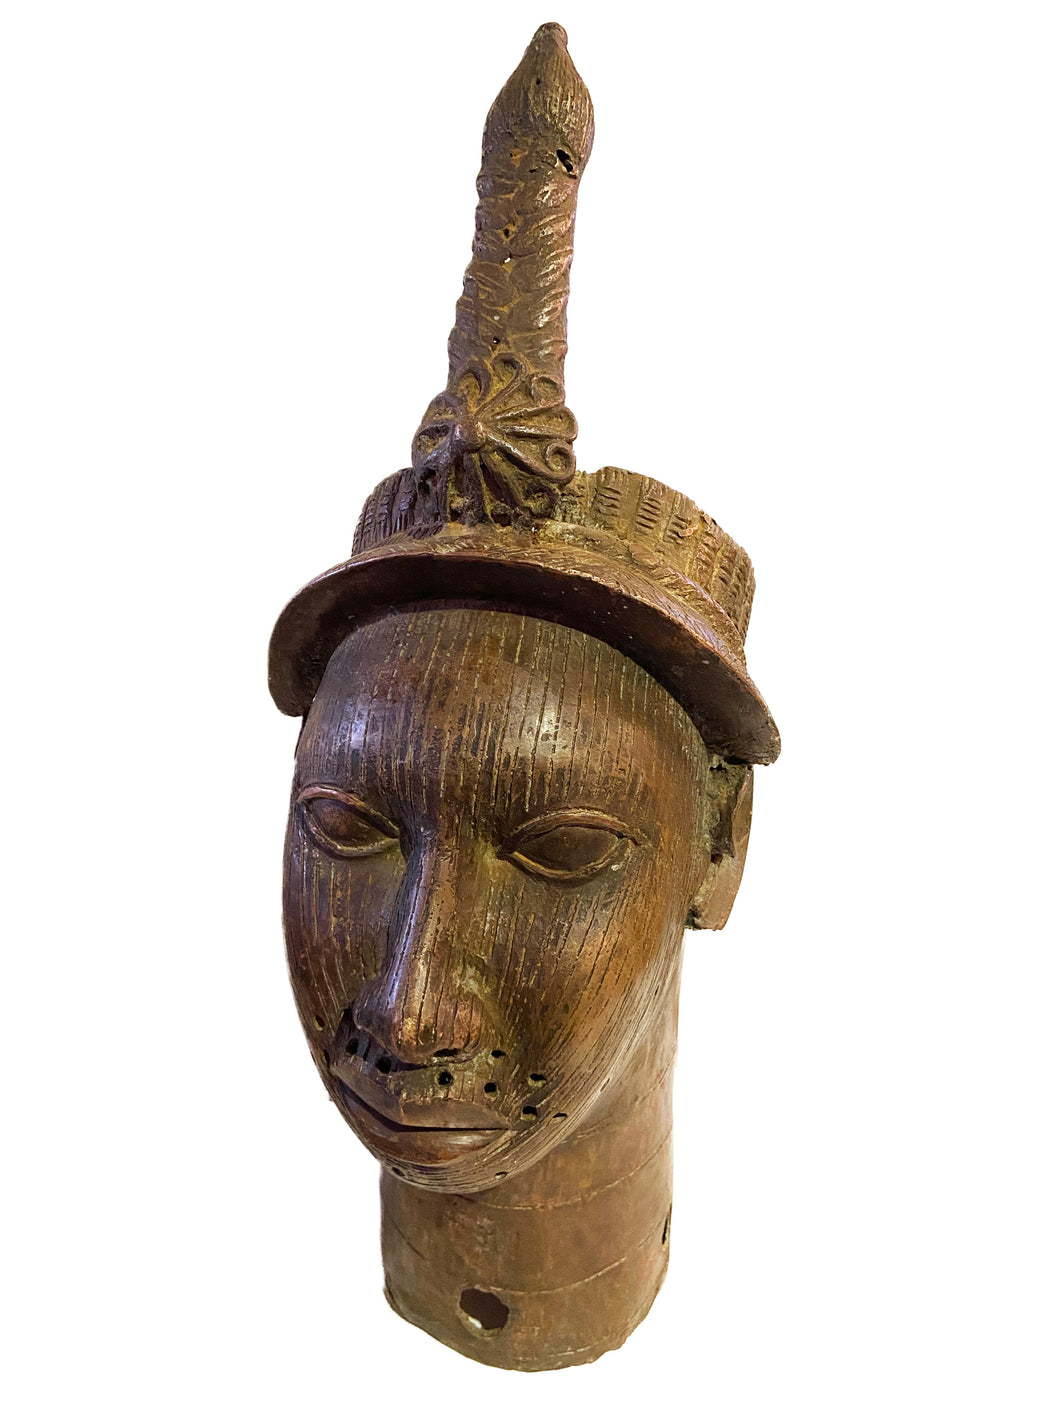 Superb Lg Benin Bronze Head of Oba Nigeria African 21.5